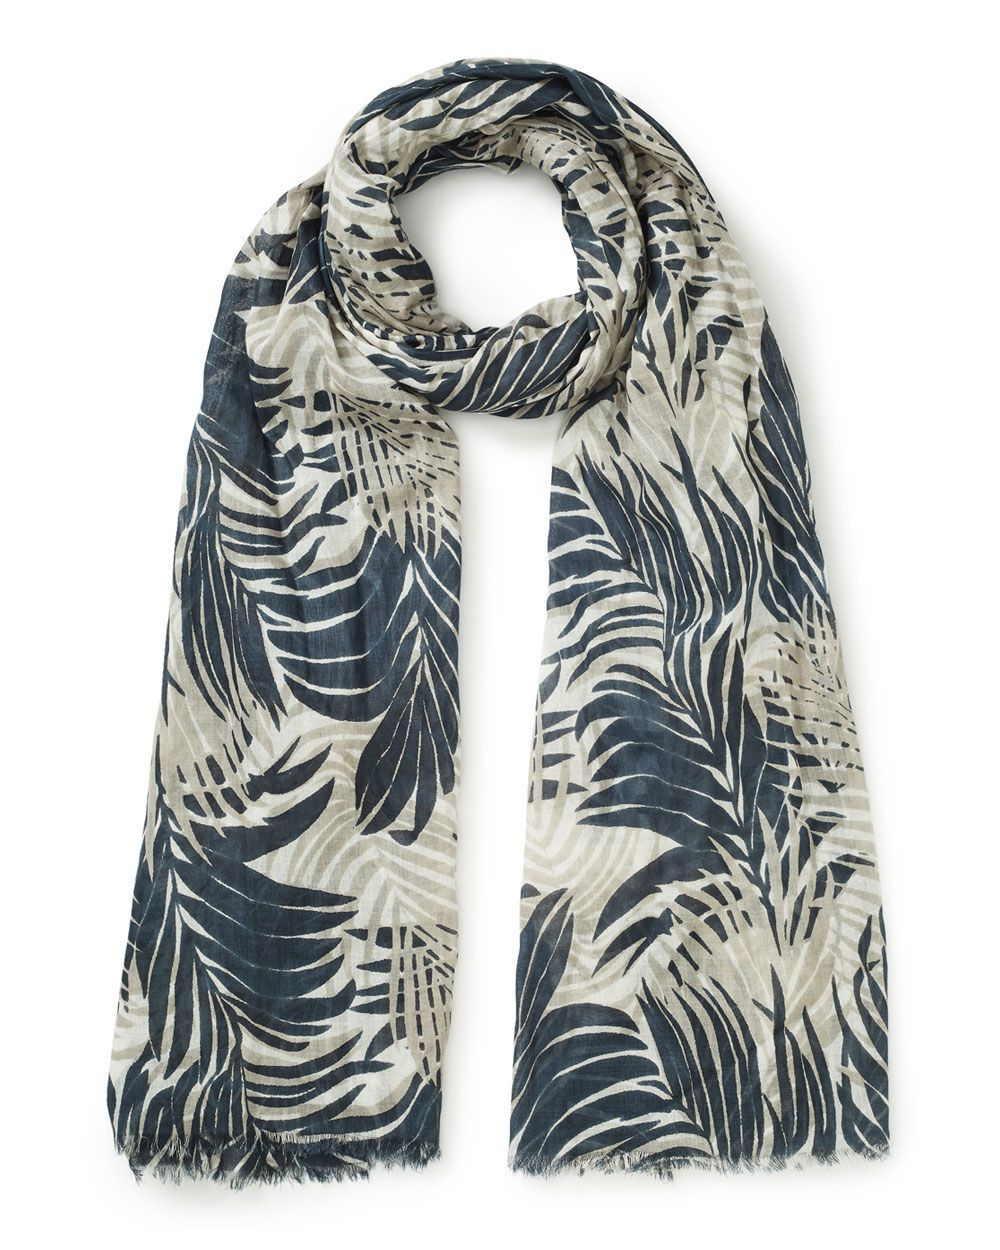 Palm Leaf Print Scarf, Black - predominant colour: black; occasions: casual; type of pattern: heavy; style: regular; size: standard; material: fabric; pattern: florals; season: s/s 2016; wardrobe: highlight